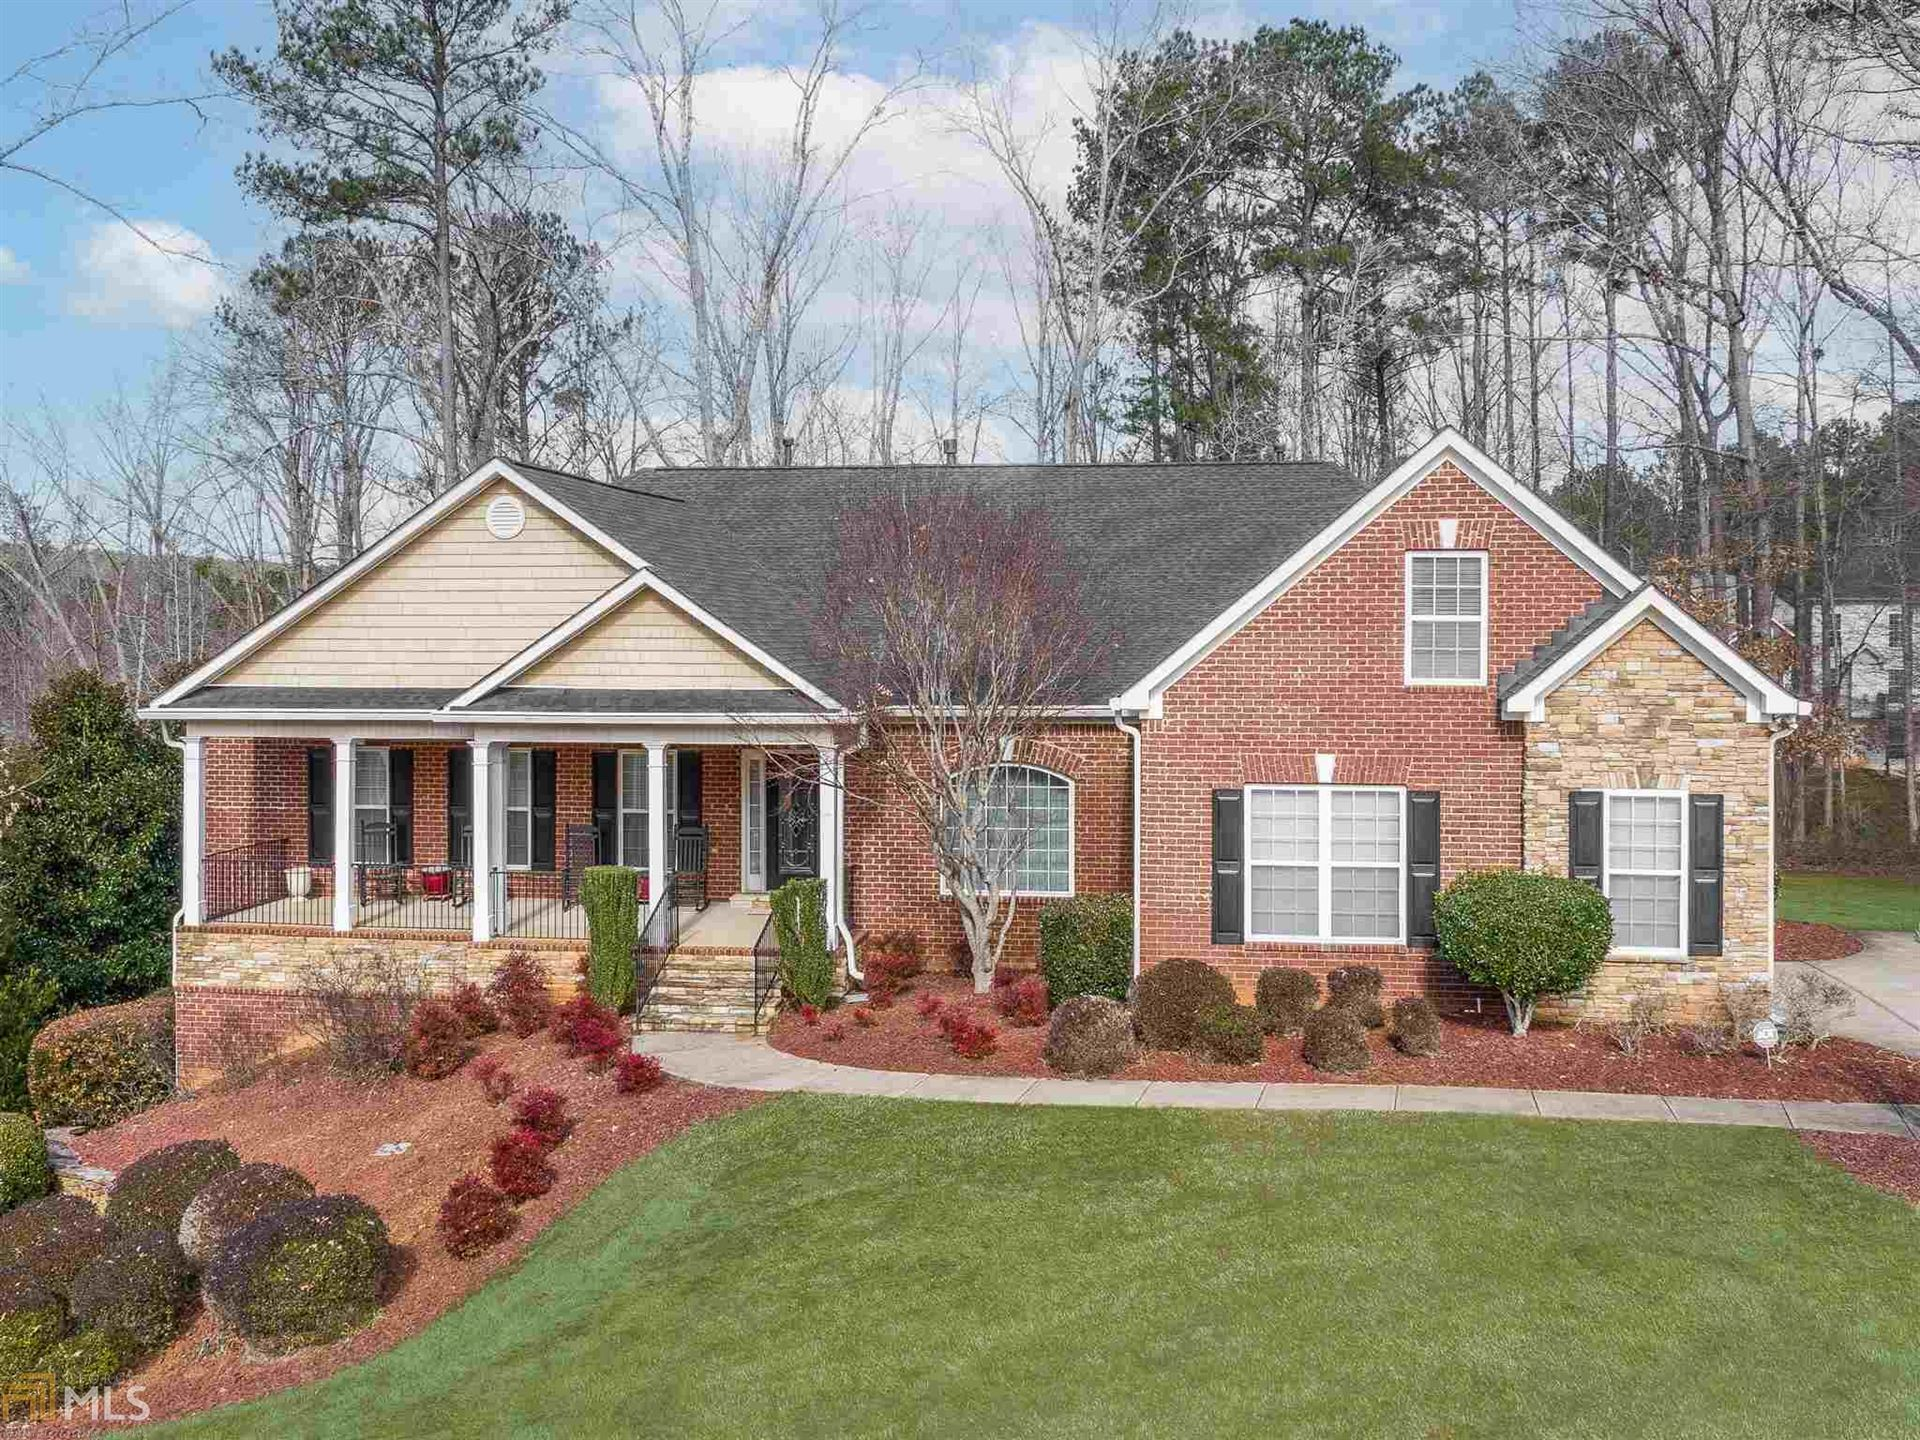 2607 Brynlyn Ct, Conyers, GA 30013 - #: 8914405